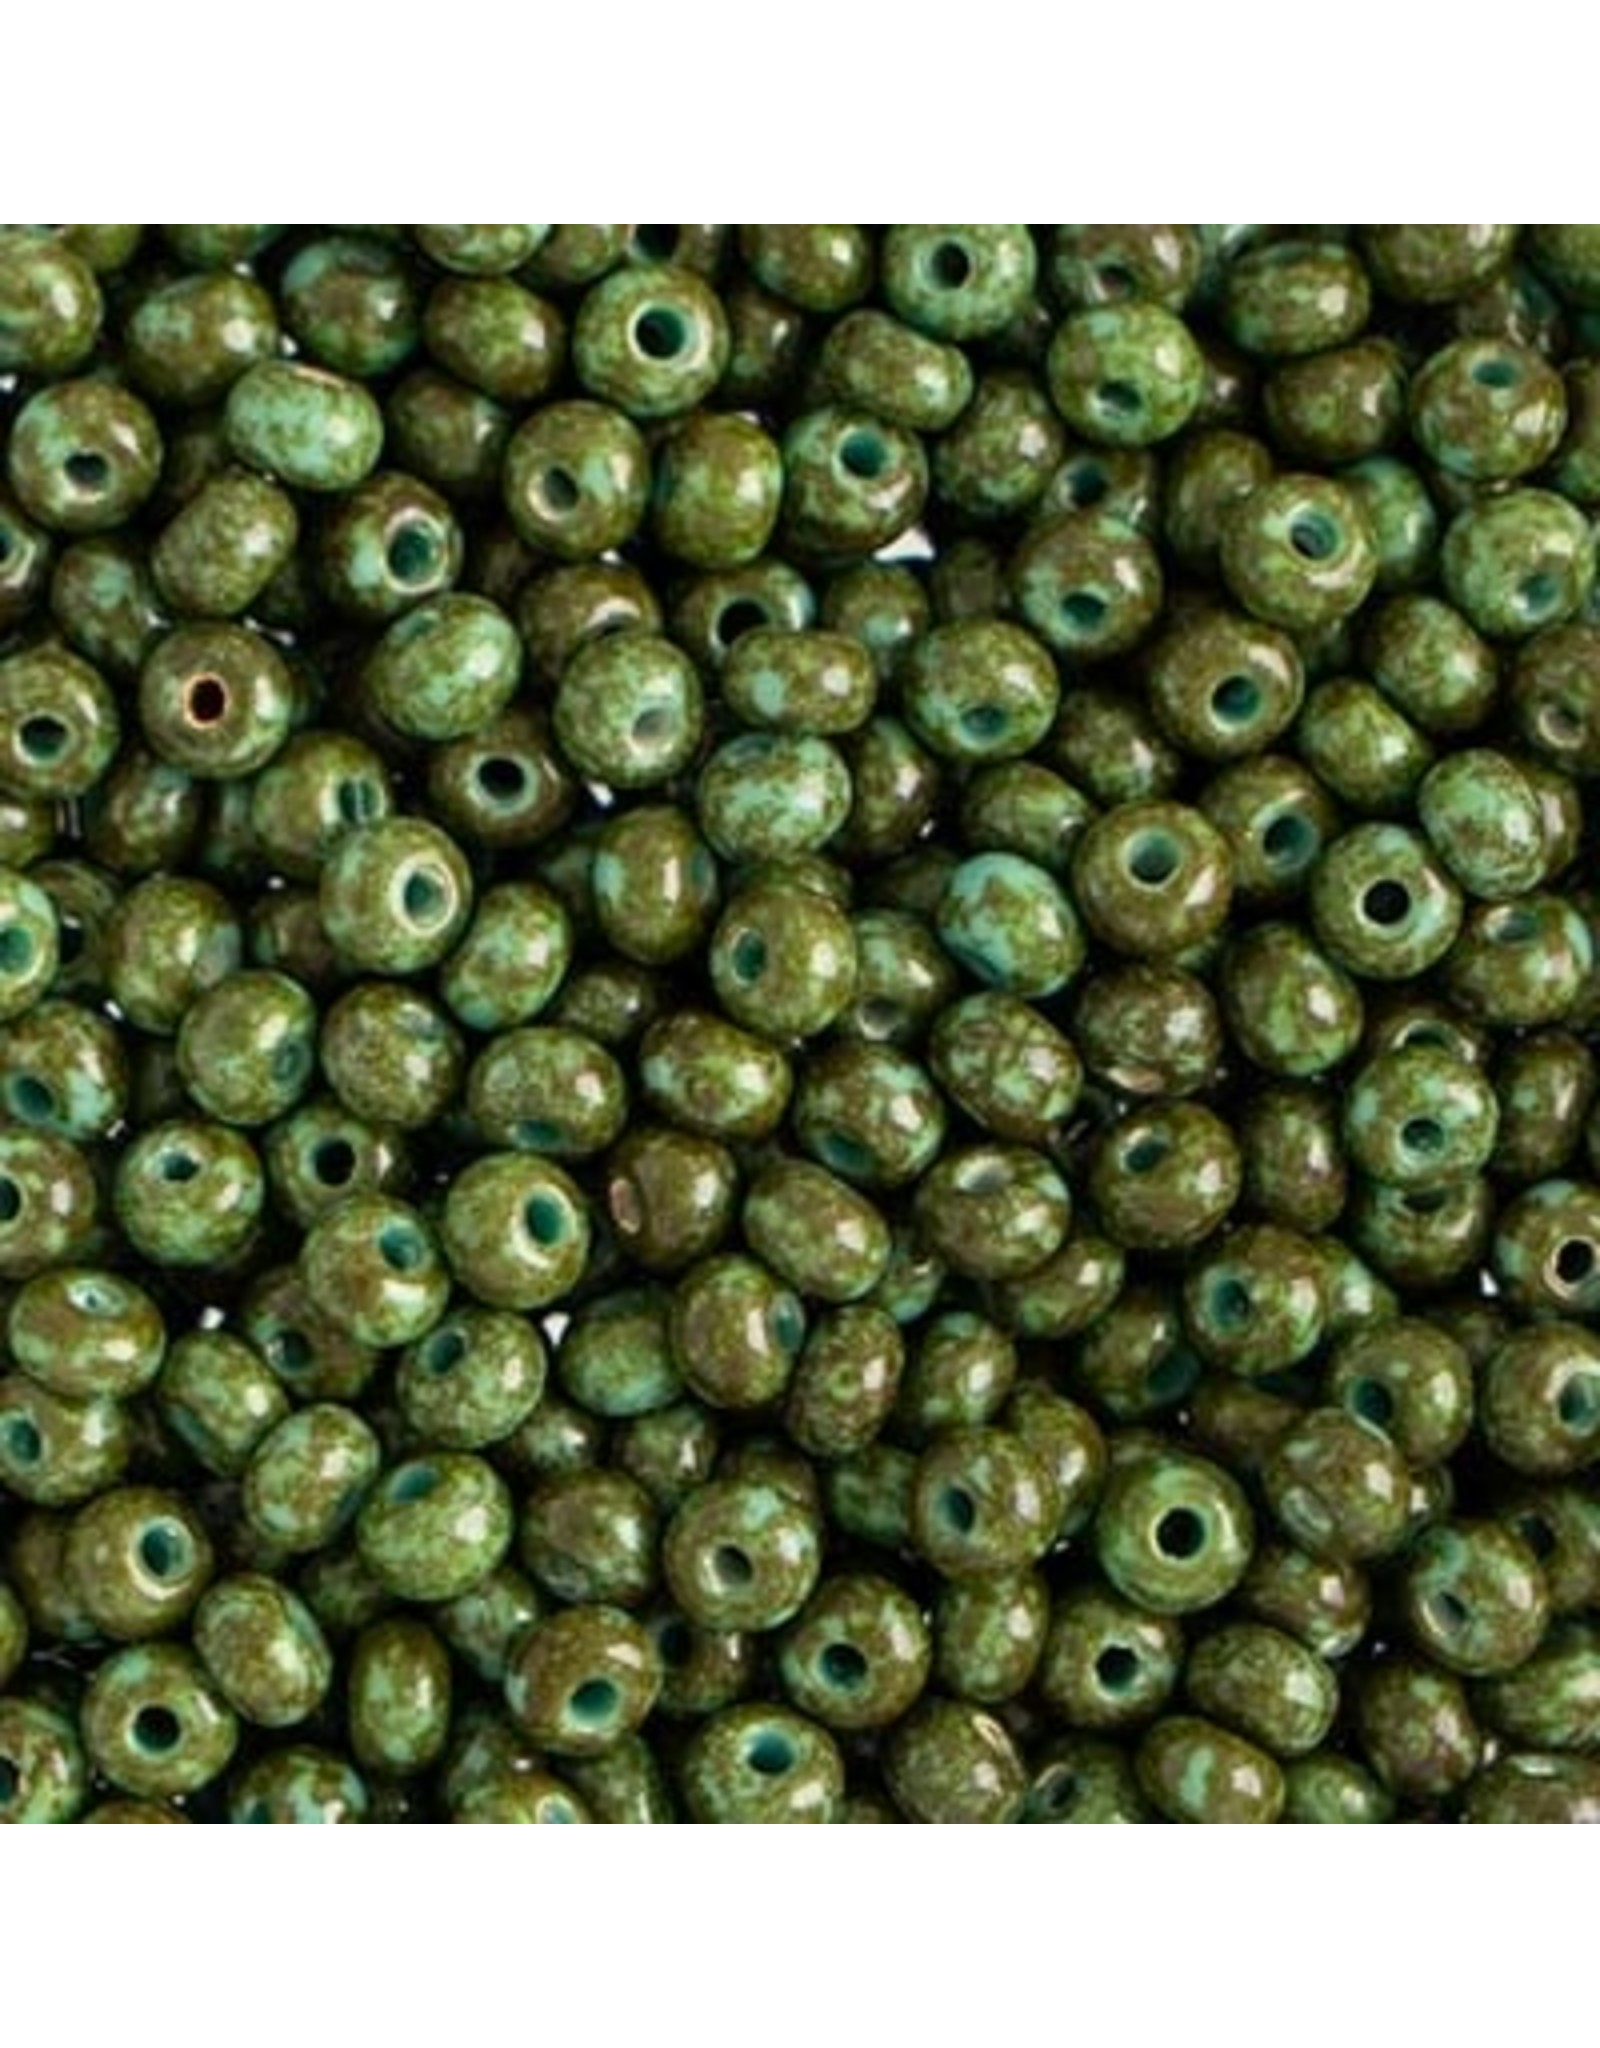 Czech 401524  6   Seed 20g  Opaque Turquoise Green Travertine